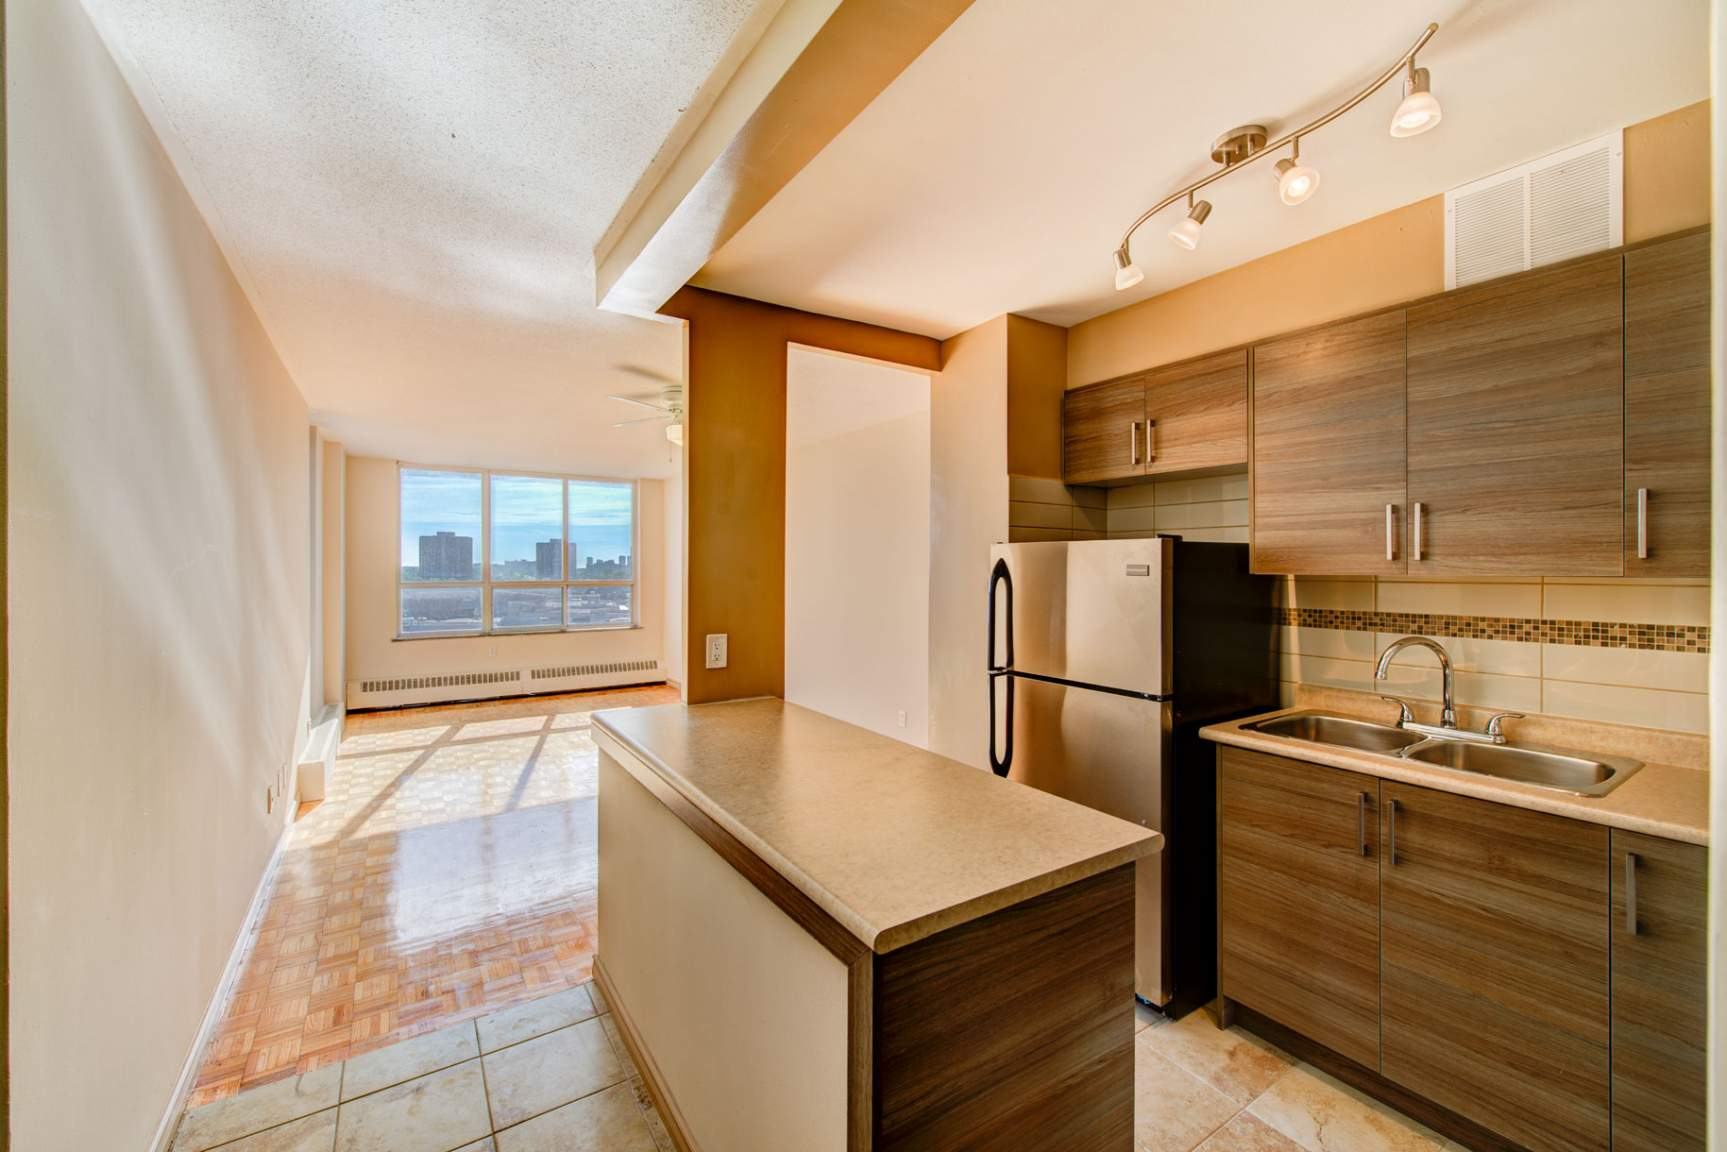 1 bedroom Apartments for rent in North-York at Hunters Lodge - Photo 10 - RentersPages – L400651